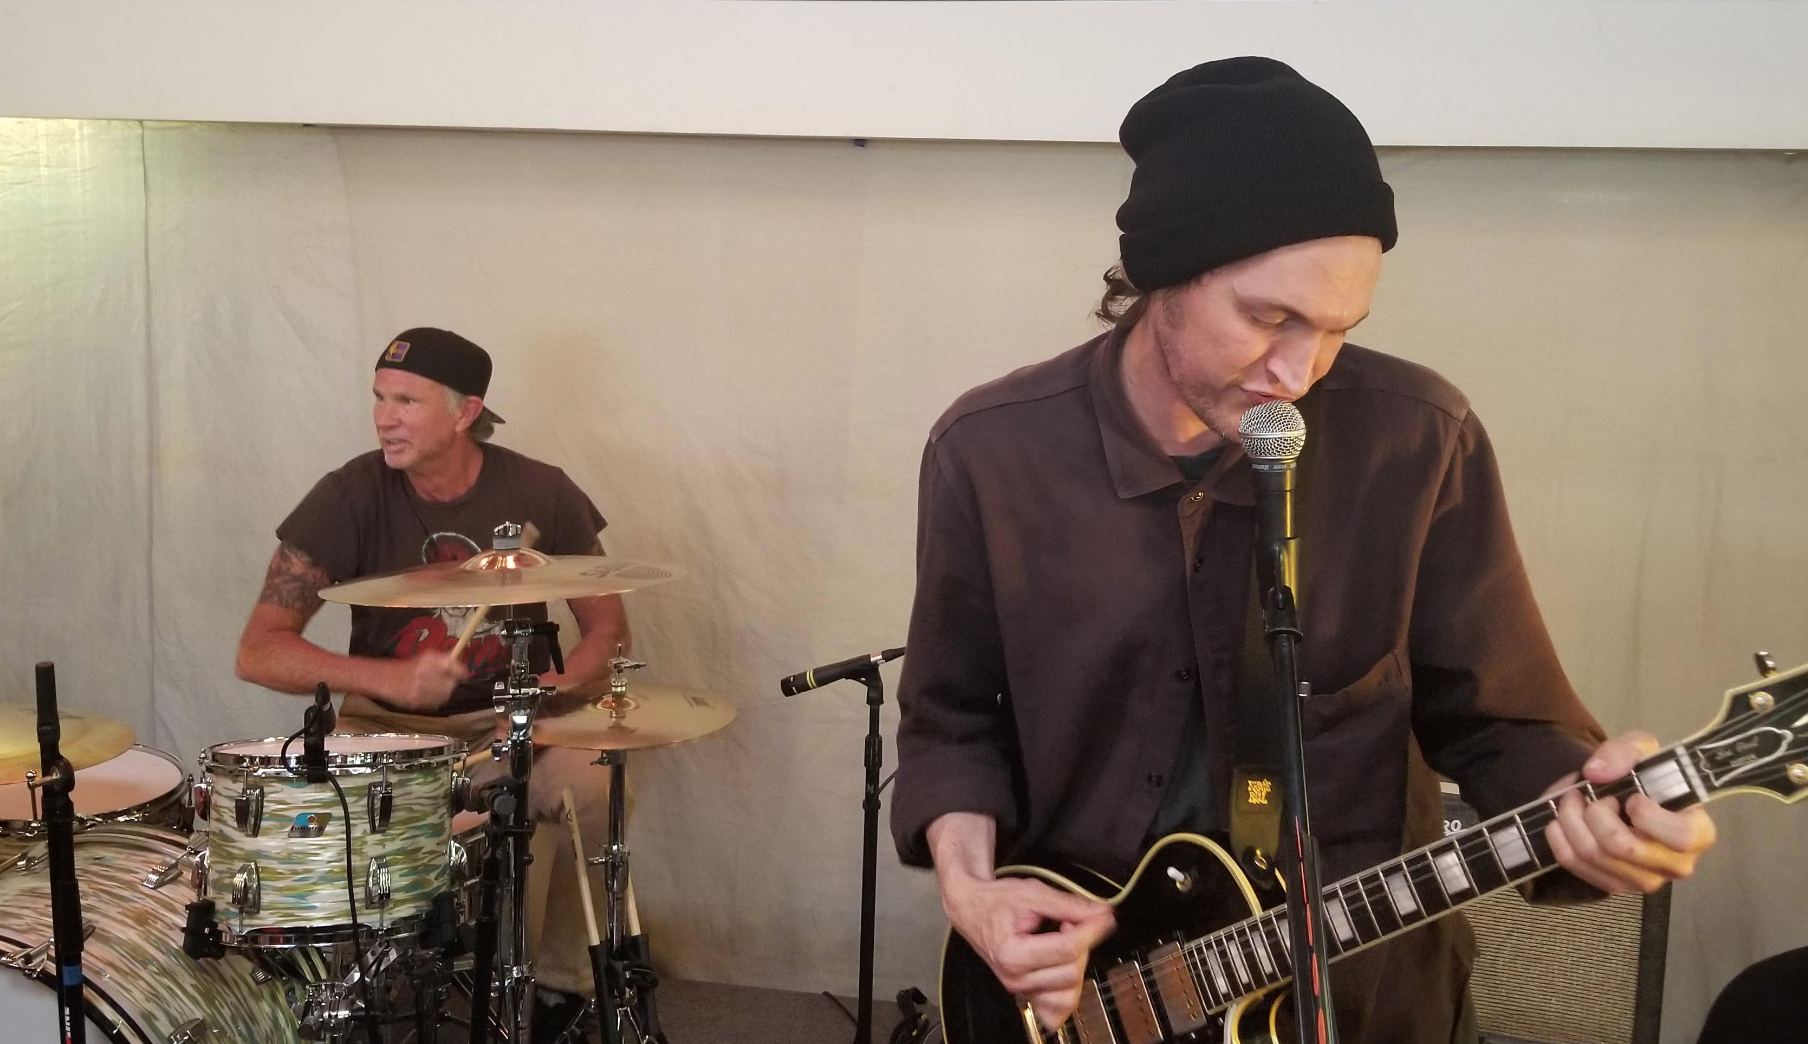 Red Hot Chili Peppers' Josh Klinghoffer and Chad Smith cover T. Rex songs at Record Store Day concert: Watch